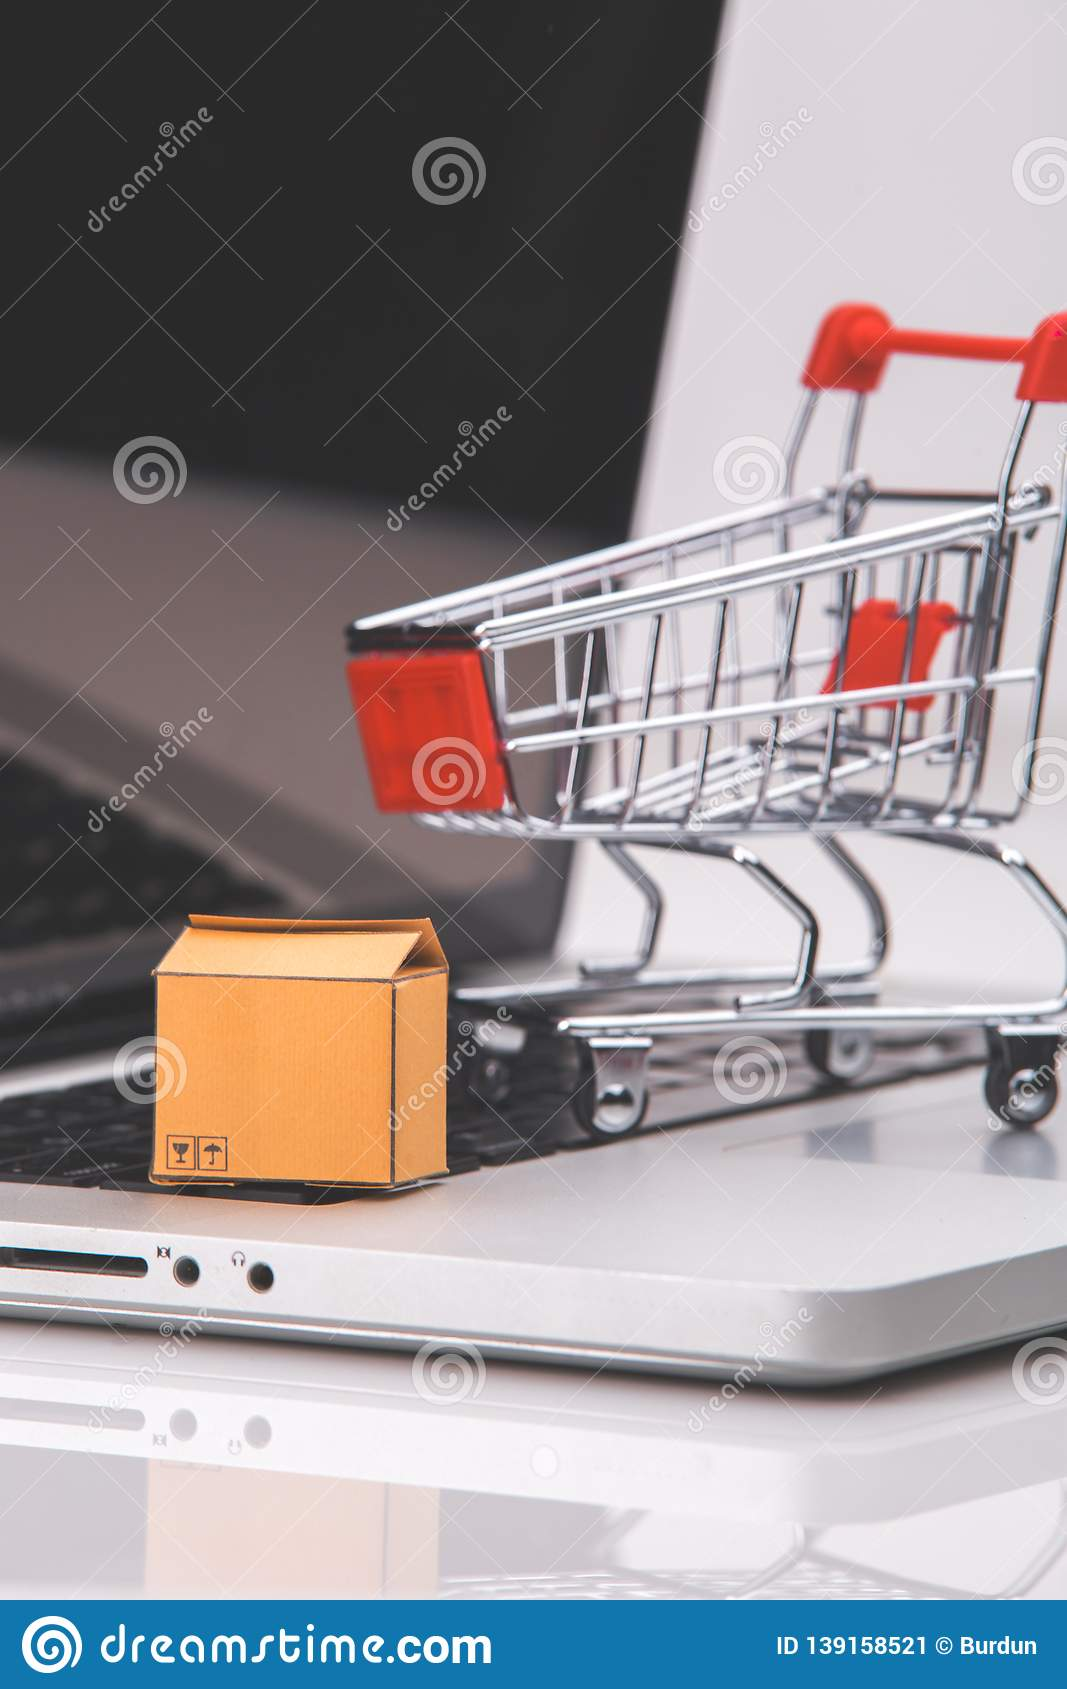 Boxes in and trolley on a laptop online shopping is a form of electronic commerce that allows consumers to directly buy